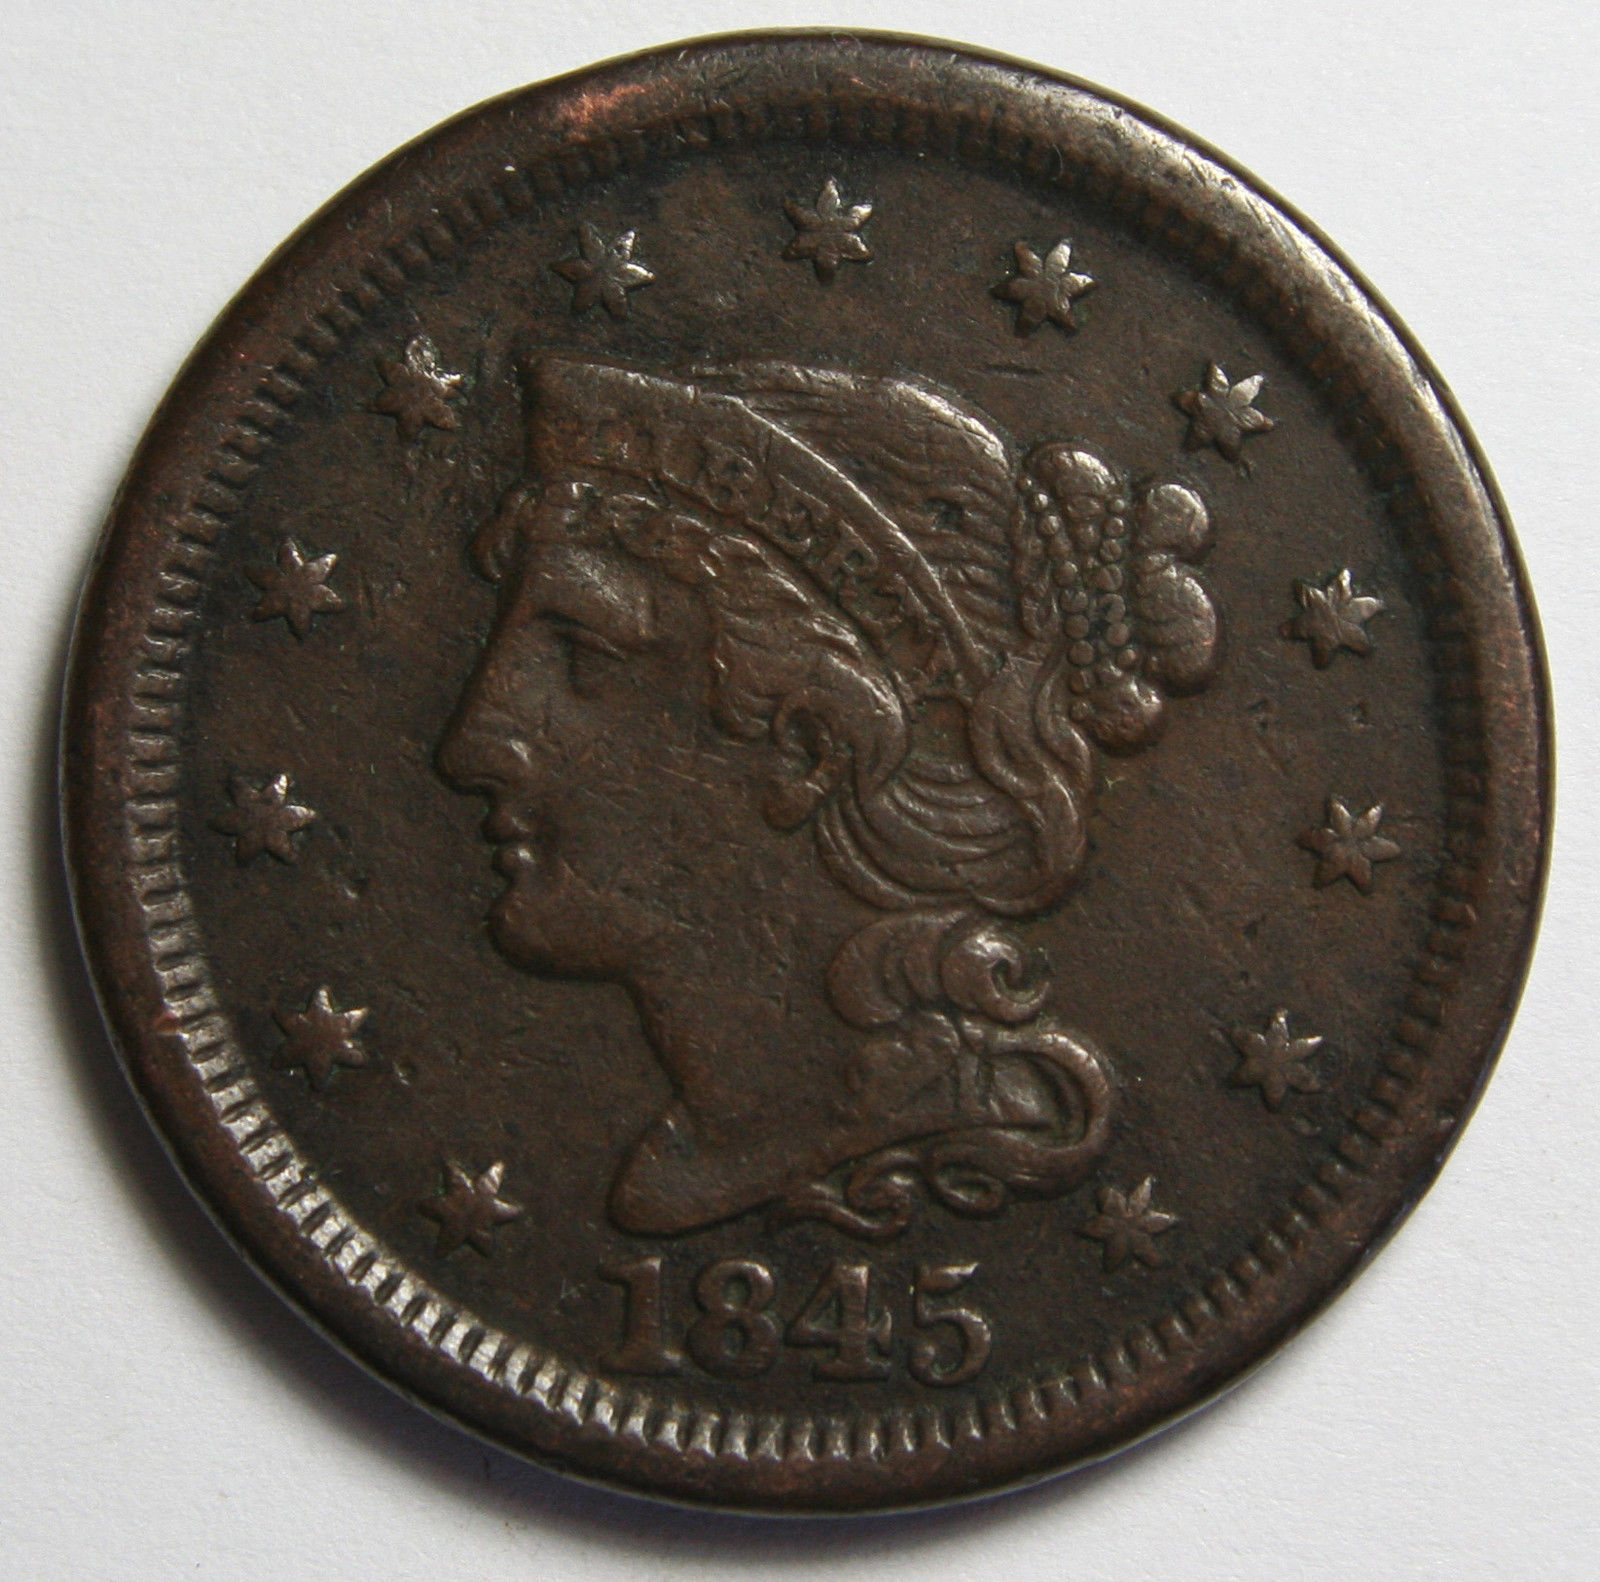 1845 Large Cent Liberty Braided Hair Head Coin Lot # MZ 4094